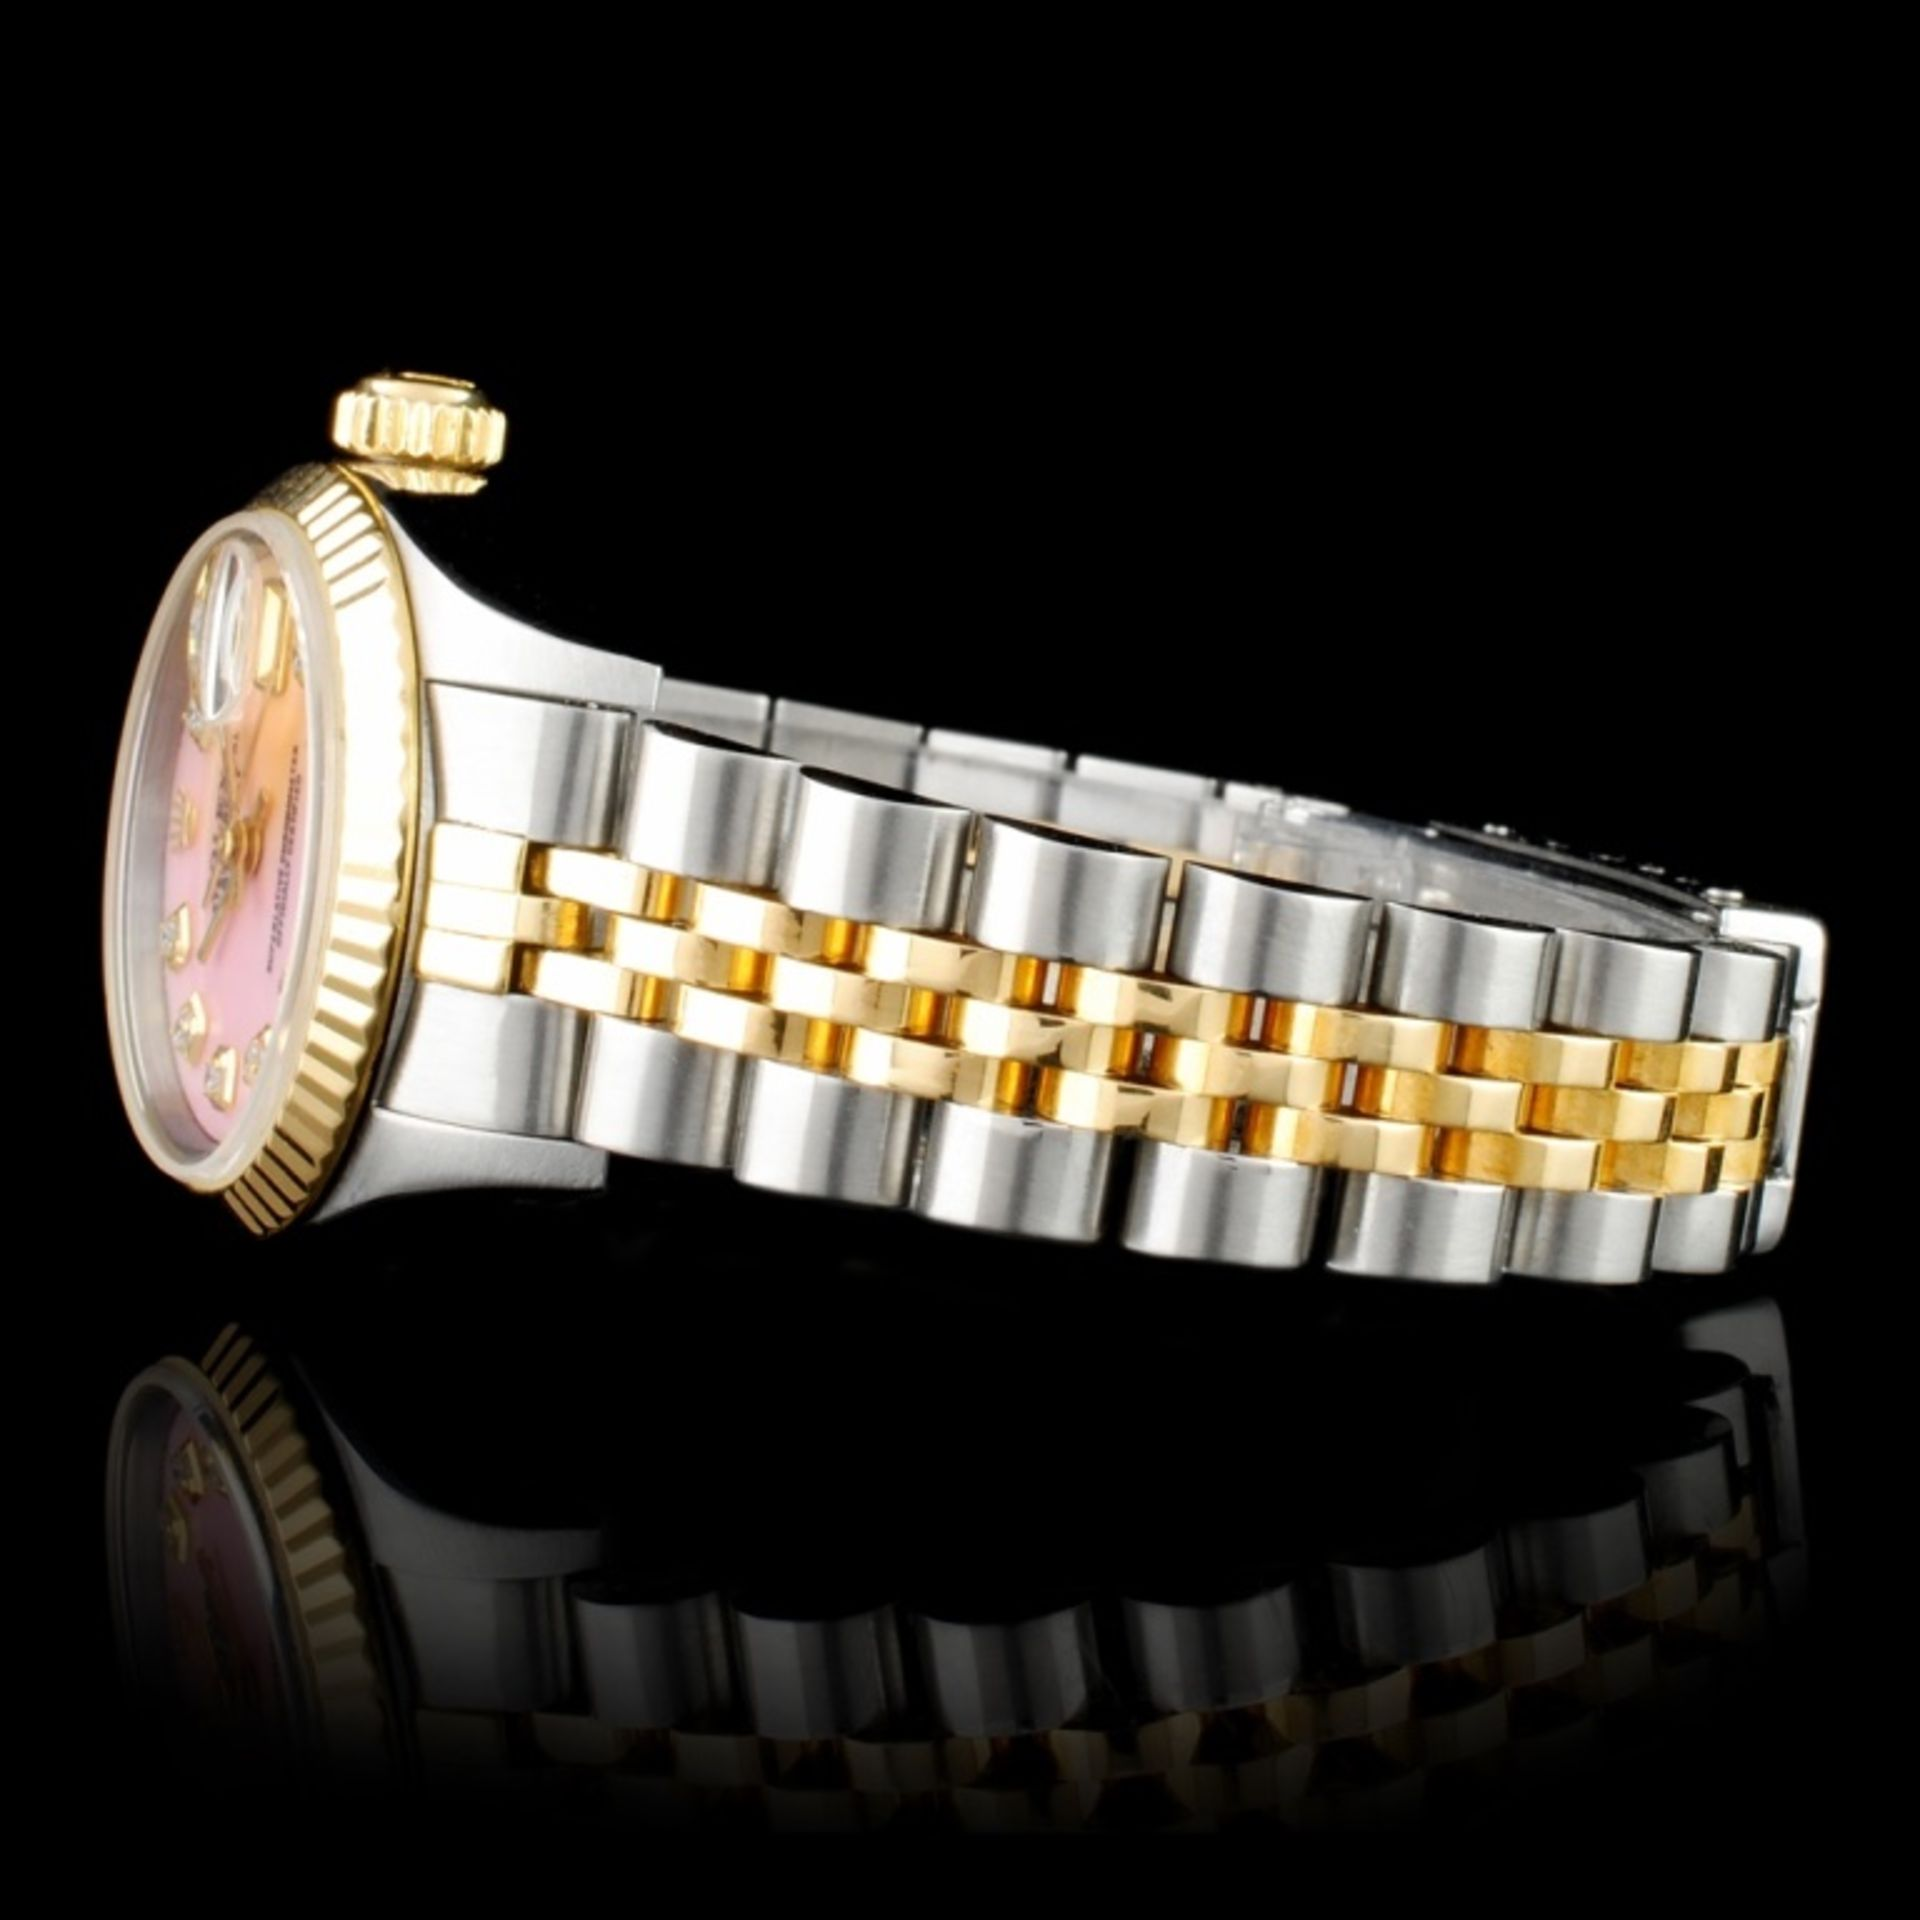 Rolex DateJust Diamond Ladies Wristwatch - Image 3 of 6